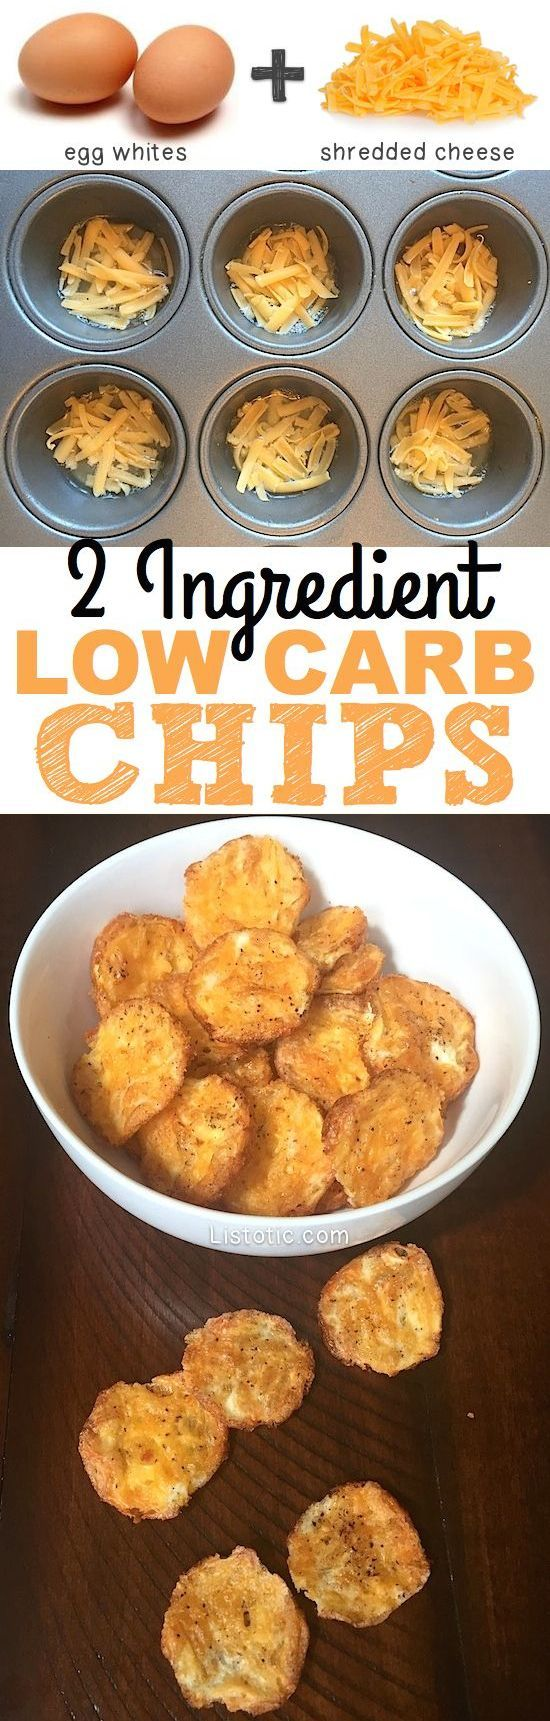 2 Ingredient chips! The perfect low carb, easy and healthy snack recipe! Listotic.com